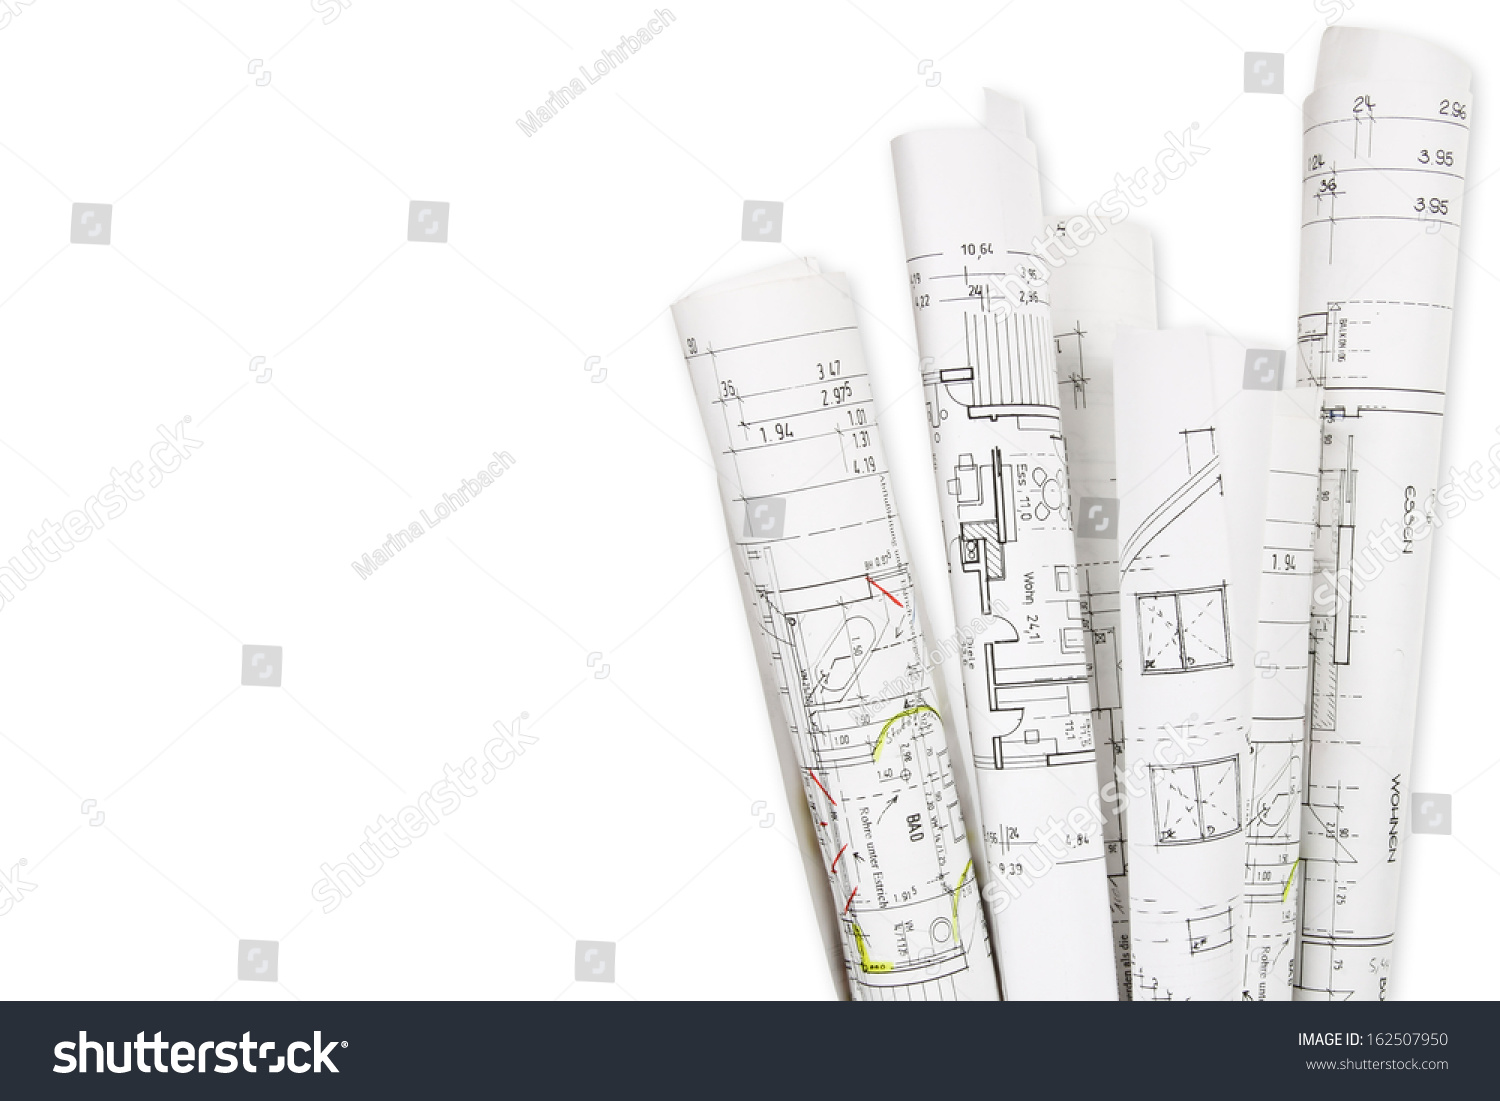 House building building plans stock photo 162507950 for Stock house plans